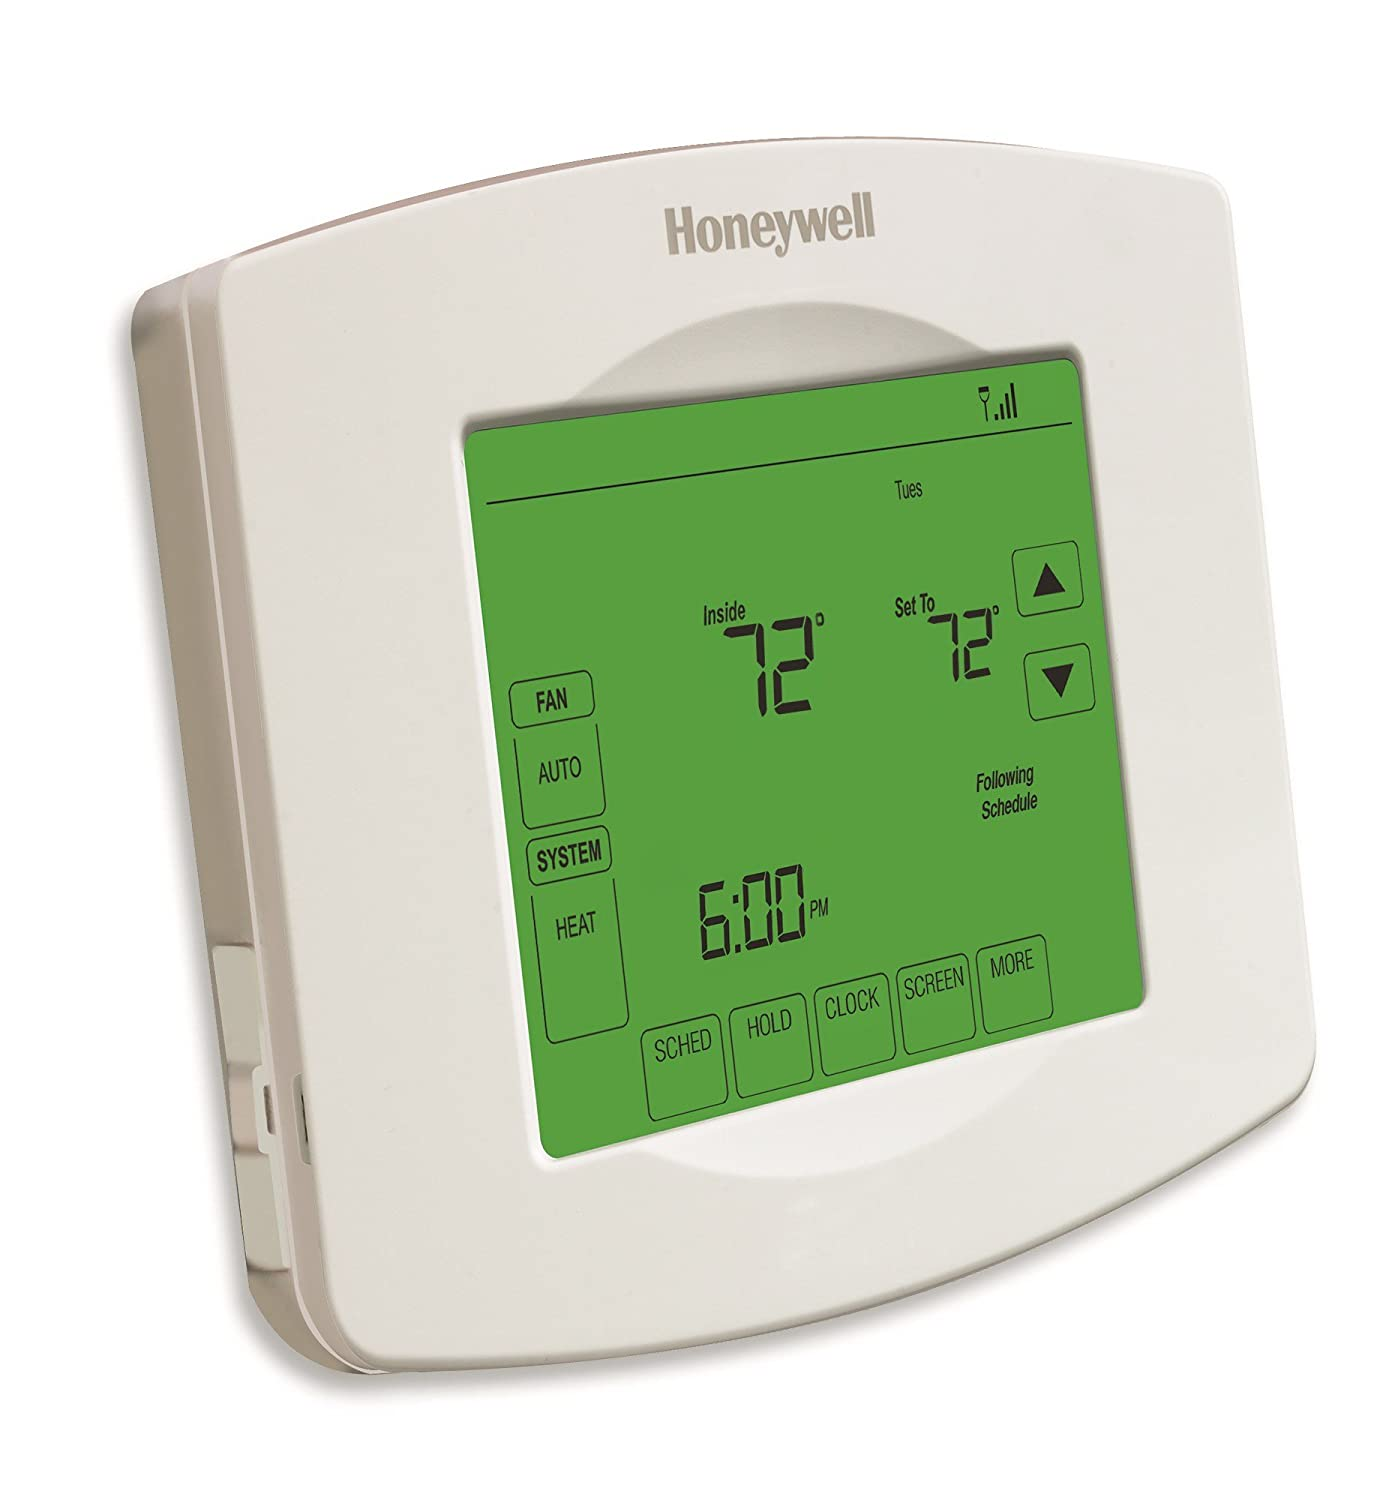 71Voa KXsL._UL1500_ amazon com honeywell rth8580wf 7 day wi fi programmable wiring diagram honeywell thermostat rth8500d at n-0.co